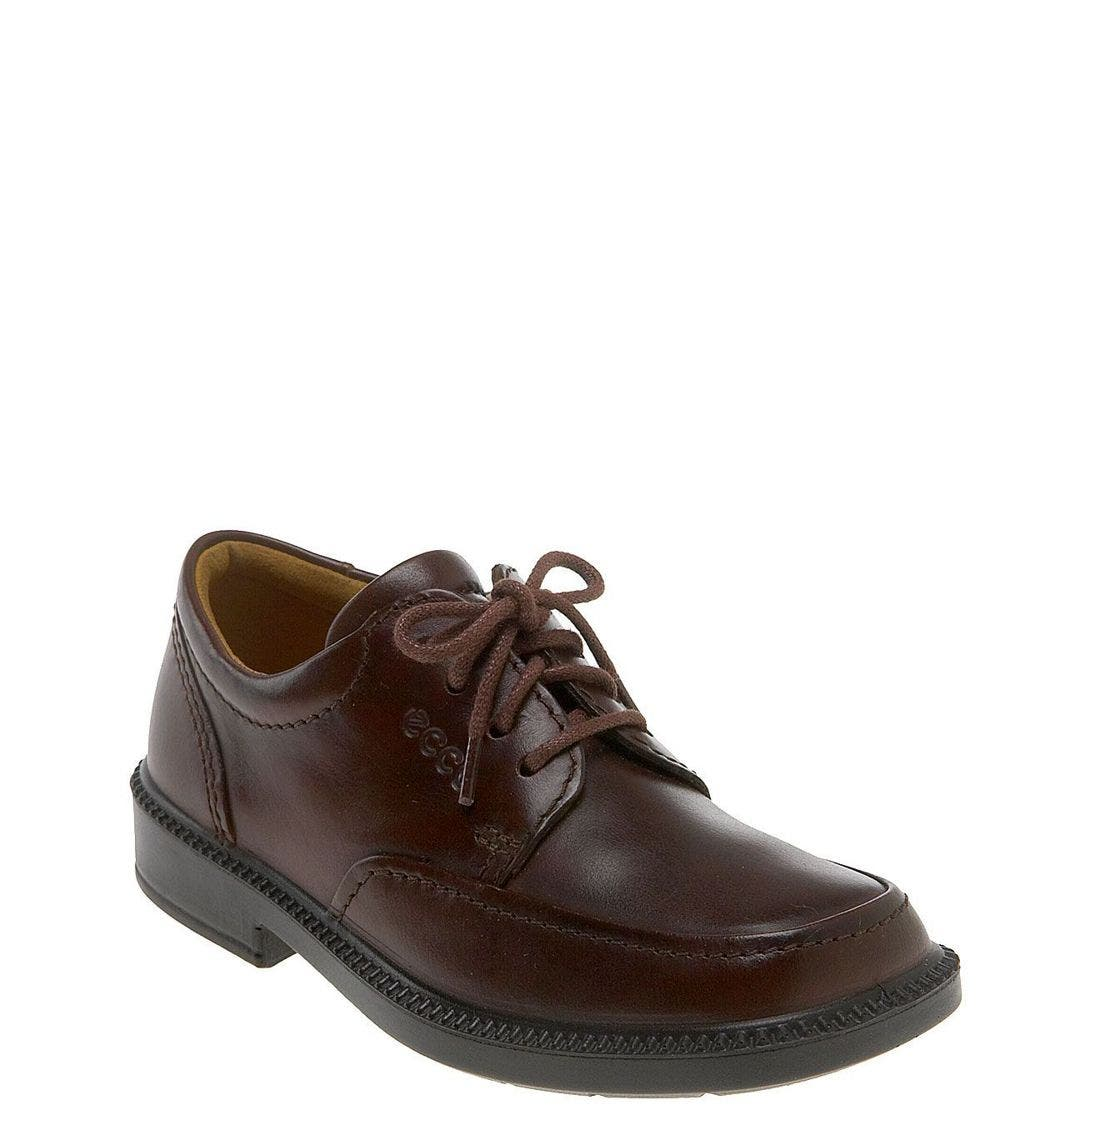 Alternate Image 1 Selected - ECCO 'Junior Arlanda' Oxford (Toddler, Little Kid & Big Kid)